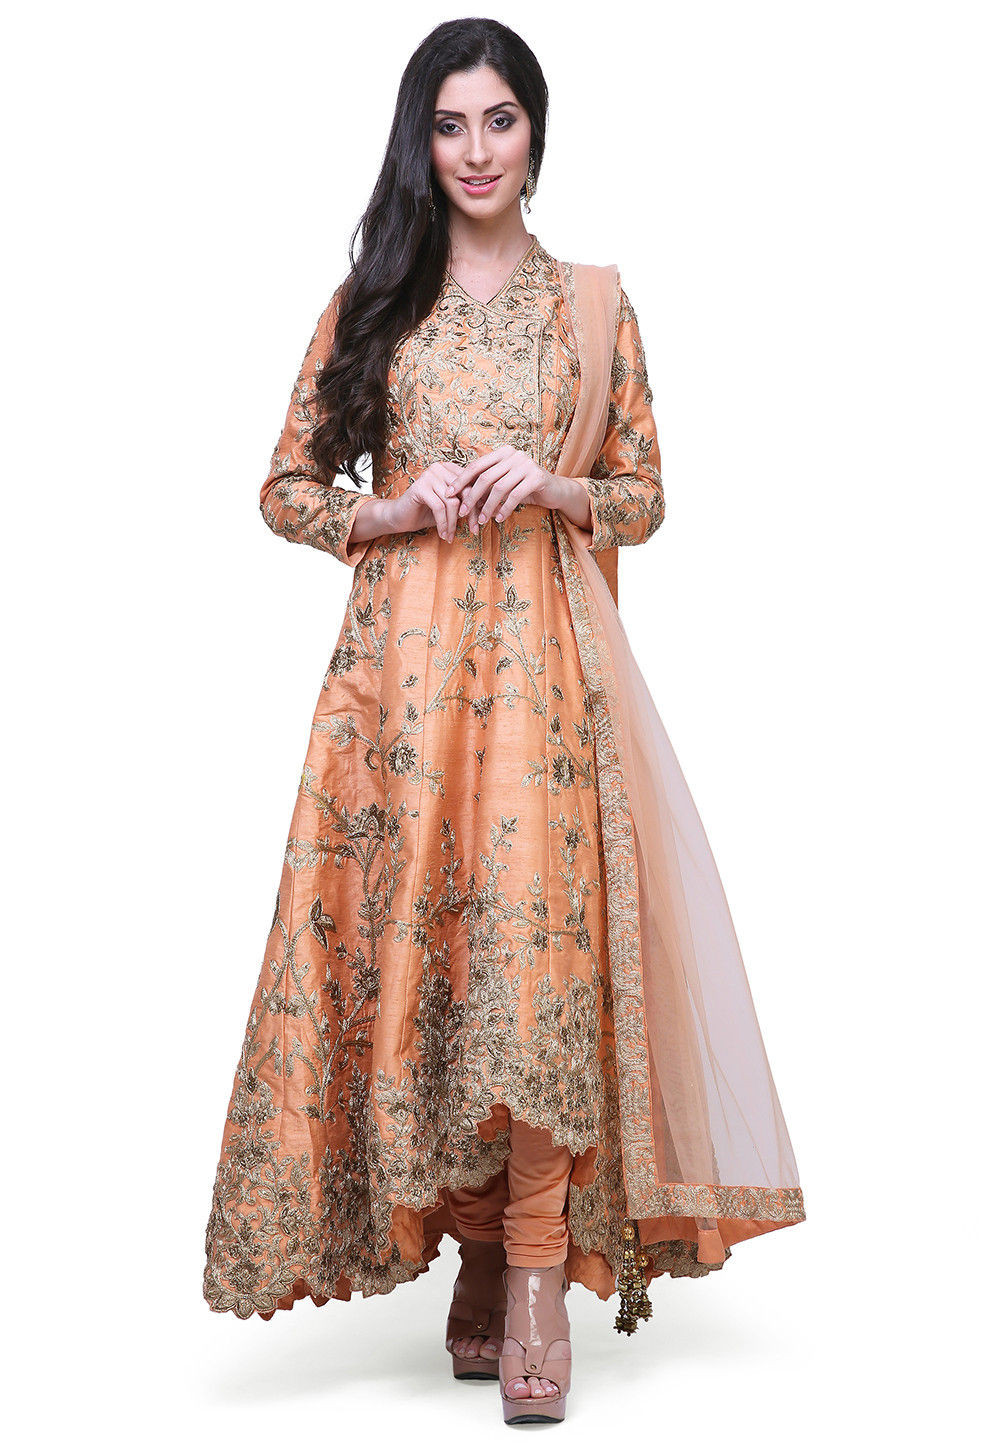 The Anarkali Suit